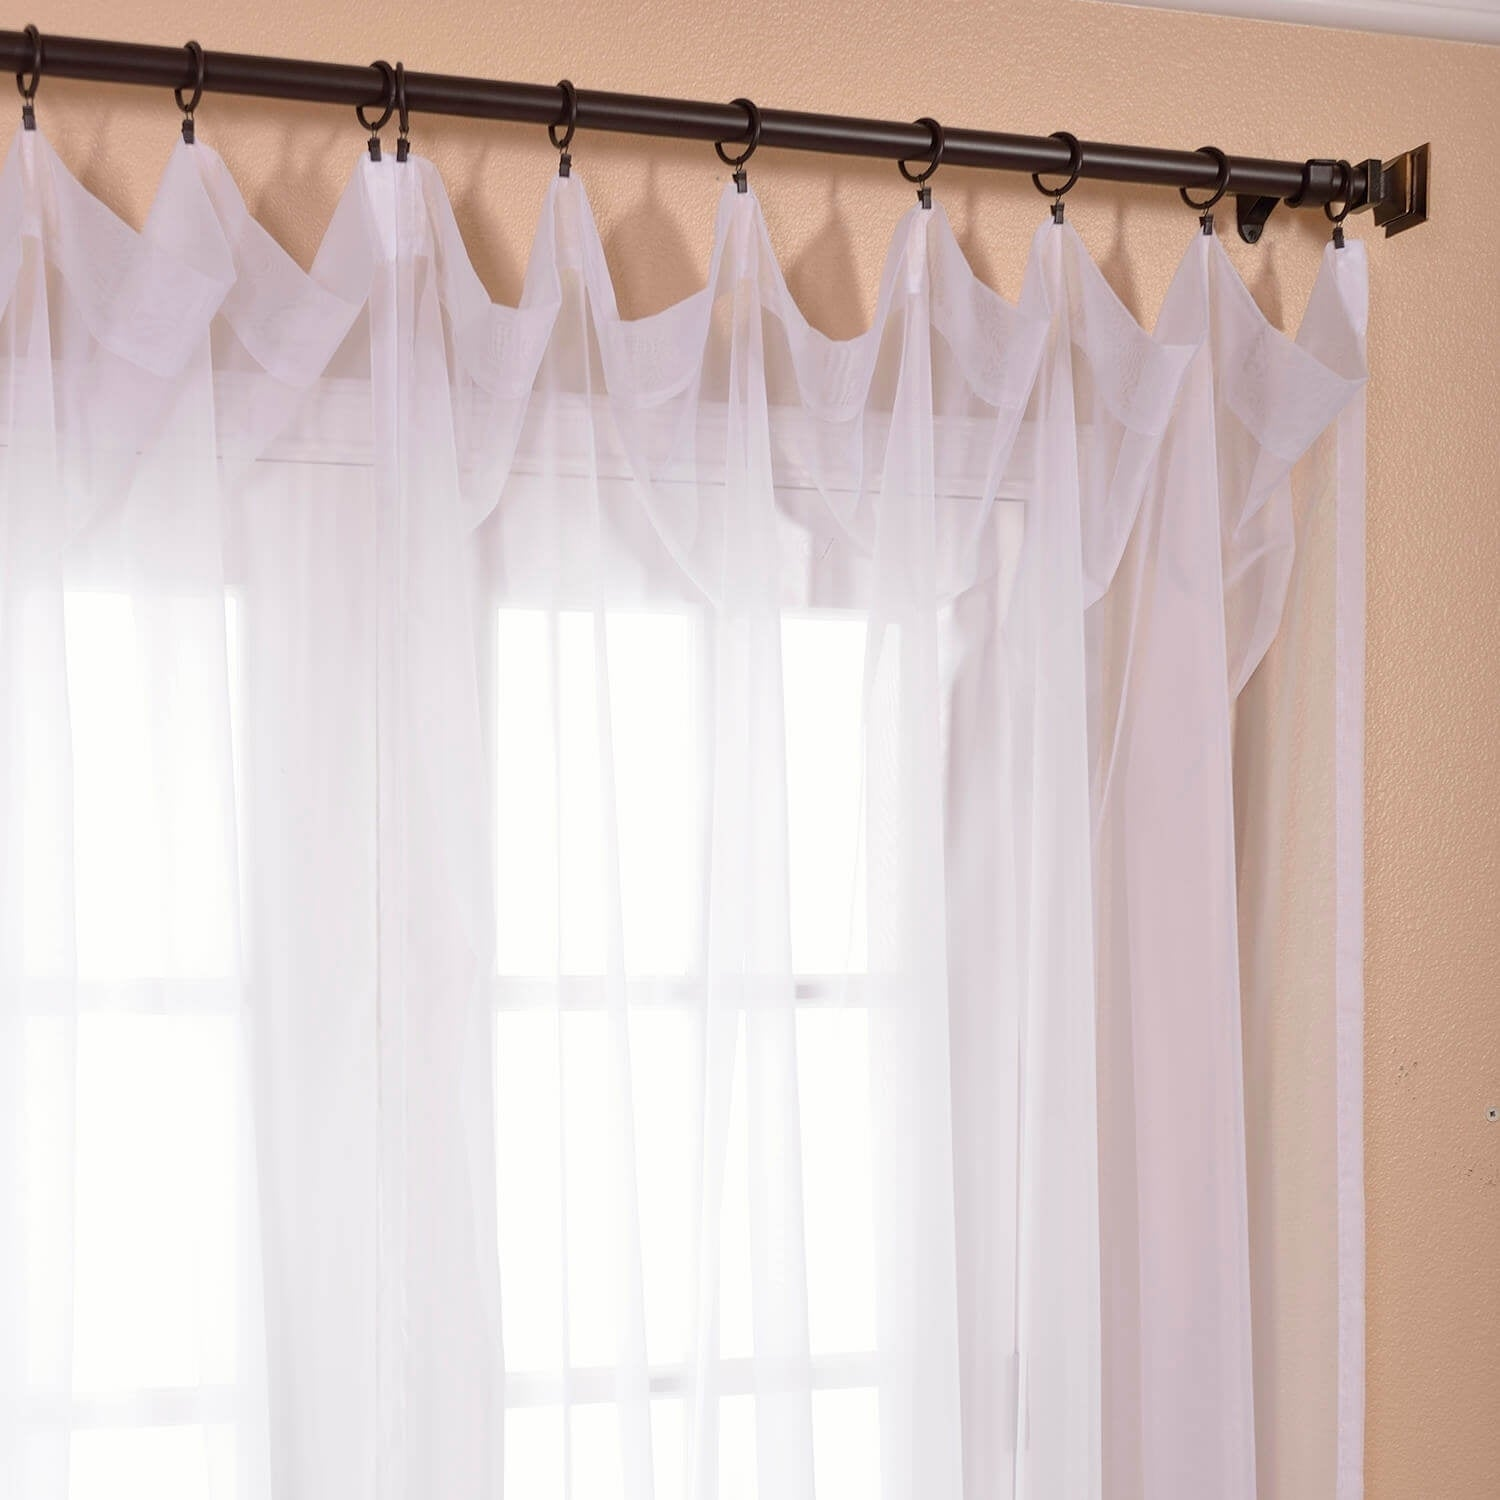 find voile color sheer rod deconovo guides drapes solid and panels for pocket curtain curtains quotations cheap get kids shopping